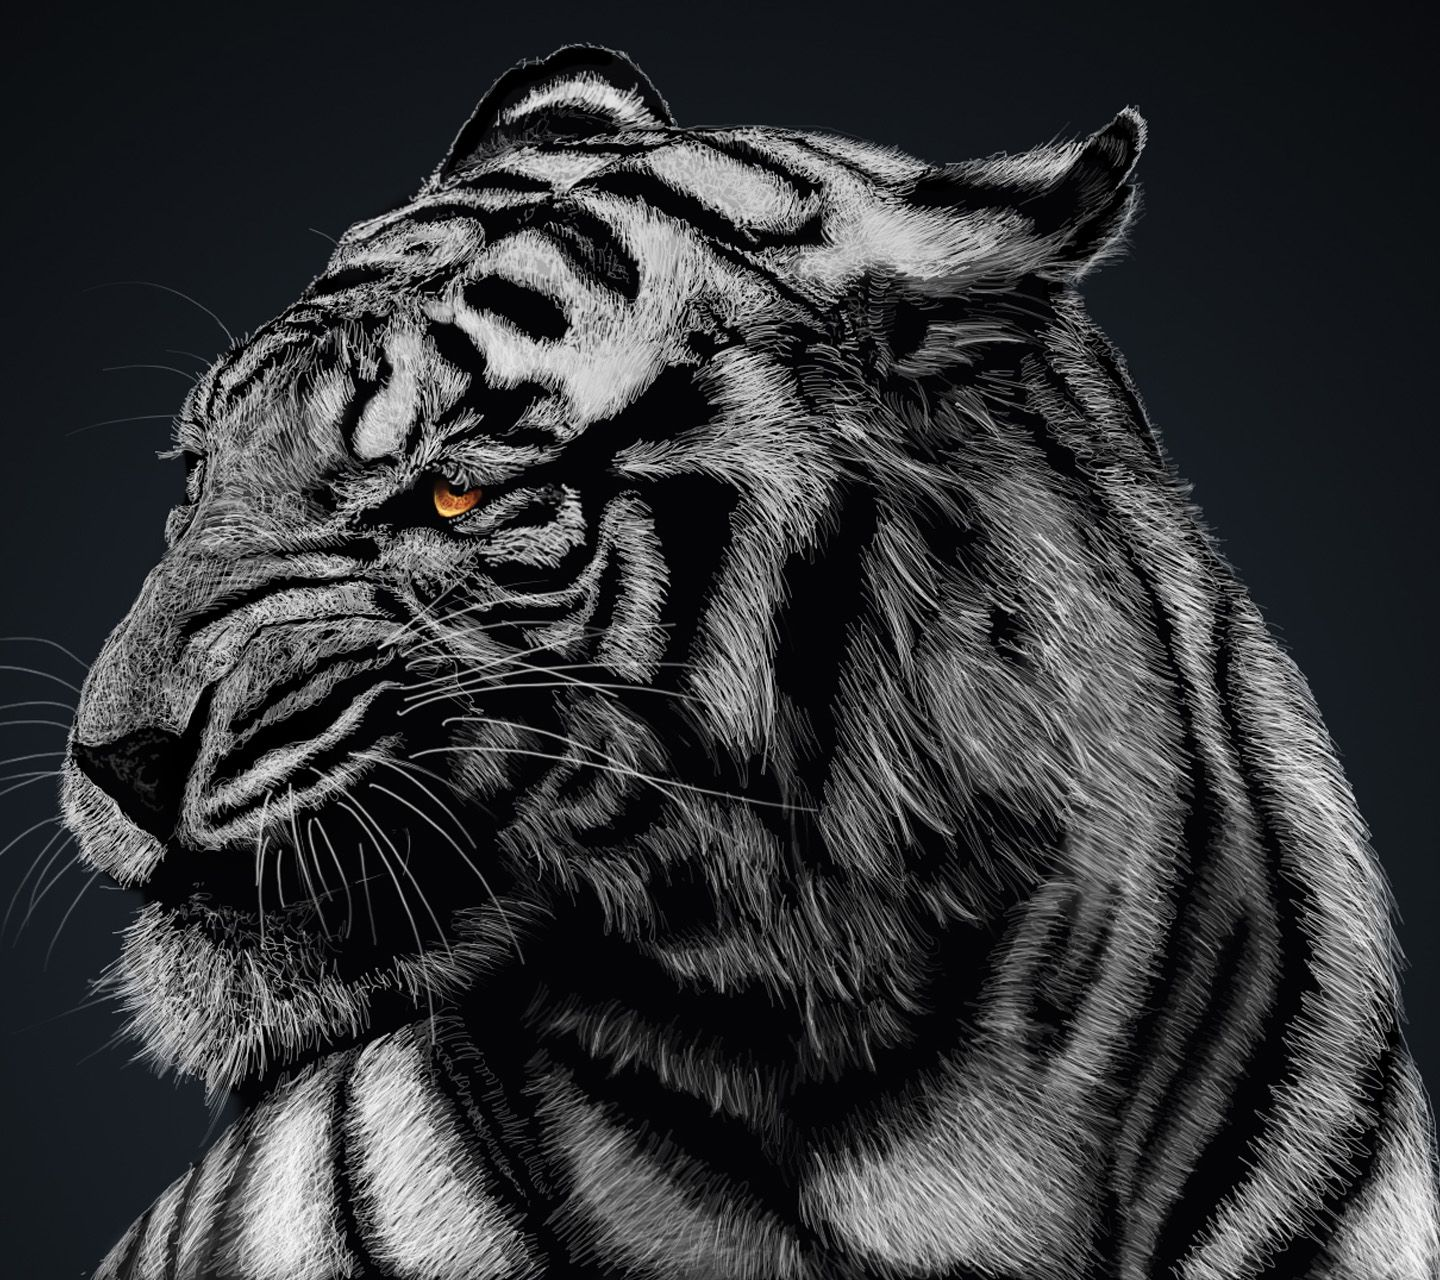 Tiger,1440x1280,1280x1440,free,hot,mobile phone wallpapers,www ...